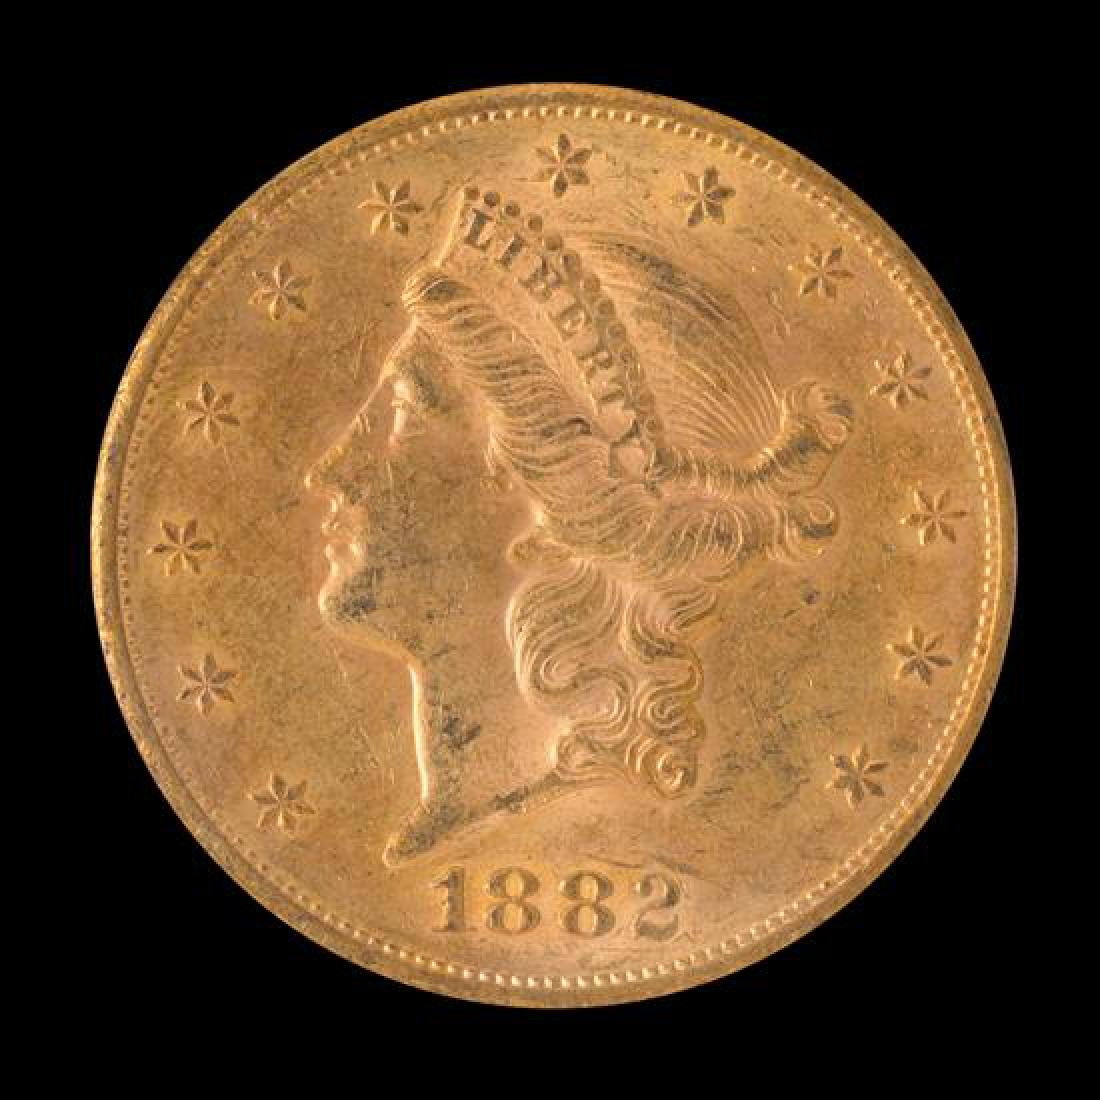 A United States 1882-S Liberty Head $20 Gold Coin